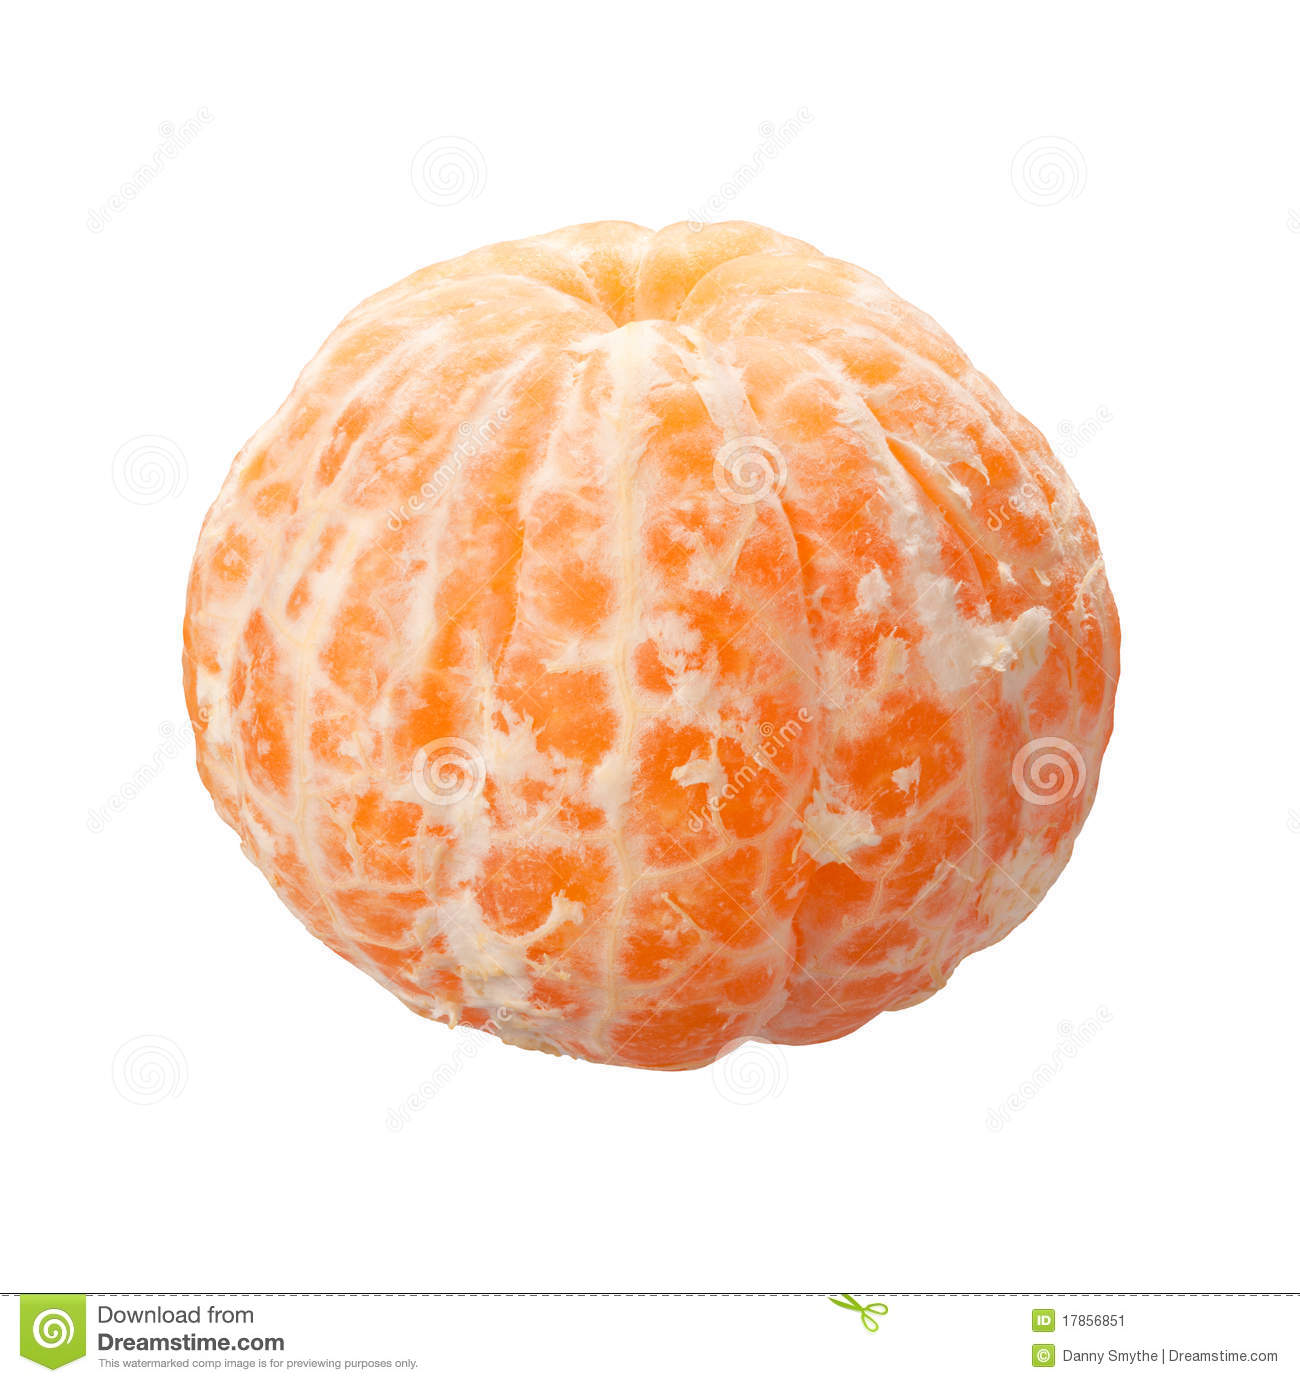 tangerine map with Stock Image Peeled Orange Clipping Path Image17856851 on 09cram99 furthermore 4220159226 additionally Bangkok Skyline At Night Wallpaper 4 moreover Royalty Free Stock Image Single Red Candy Isolated Image12512626 likewise 15755995372.